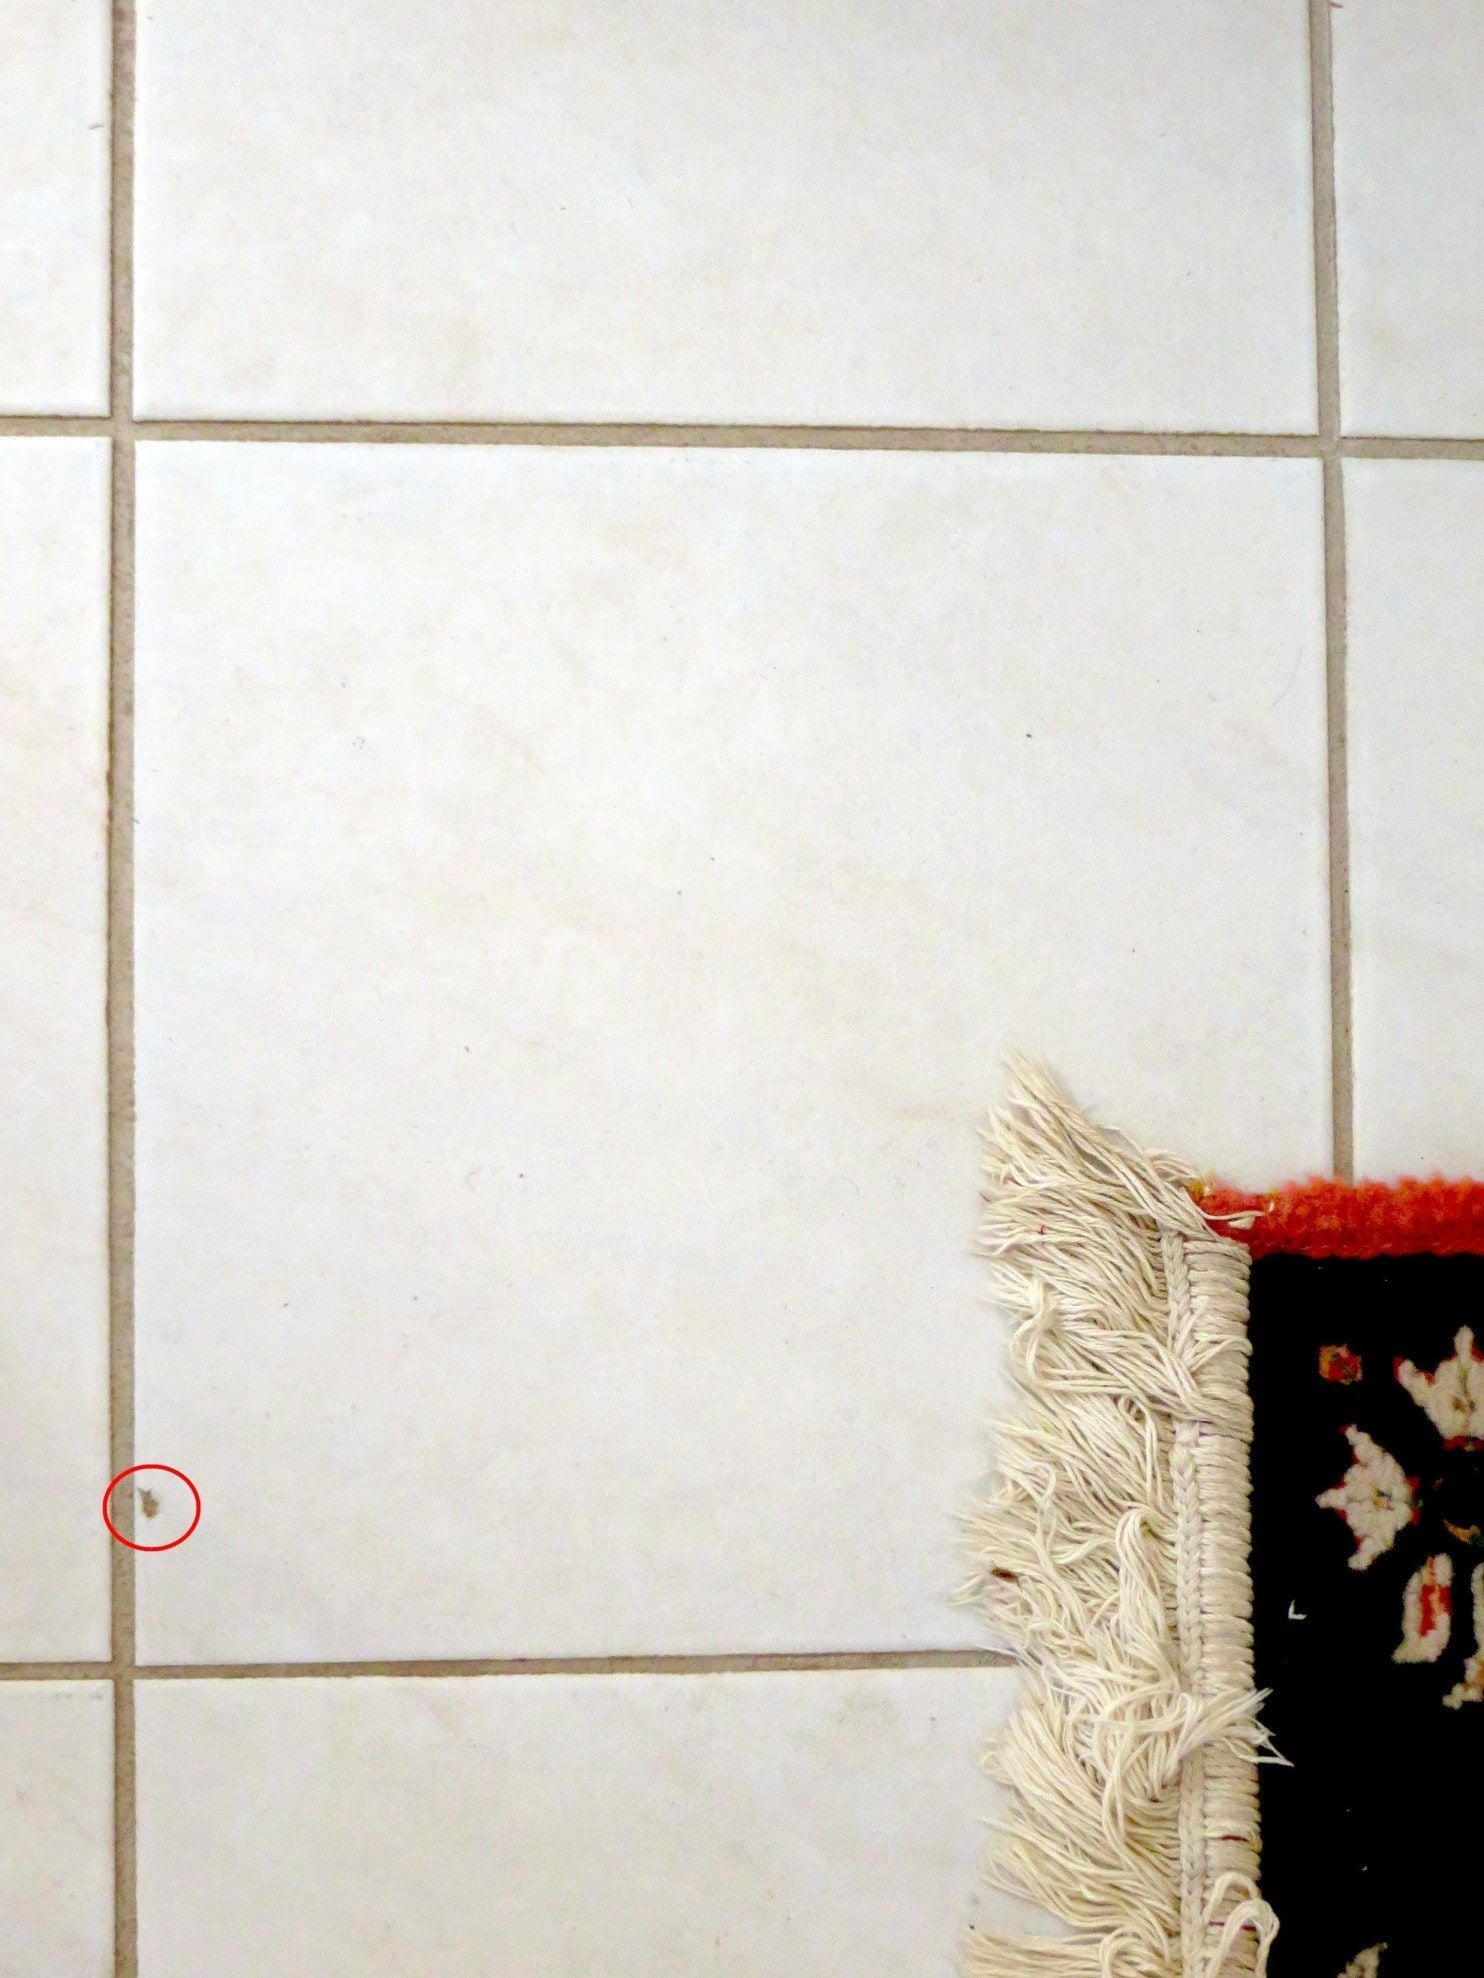 How to repair a chipped ceramic tile the washington post floor